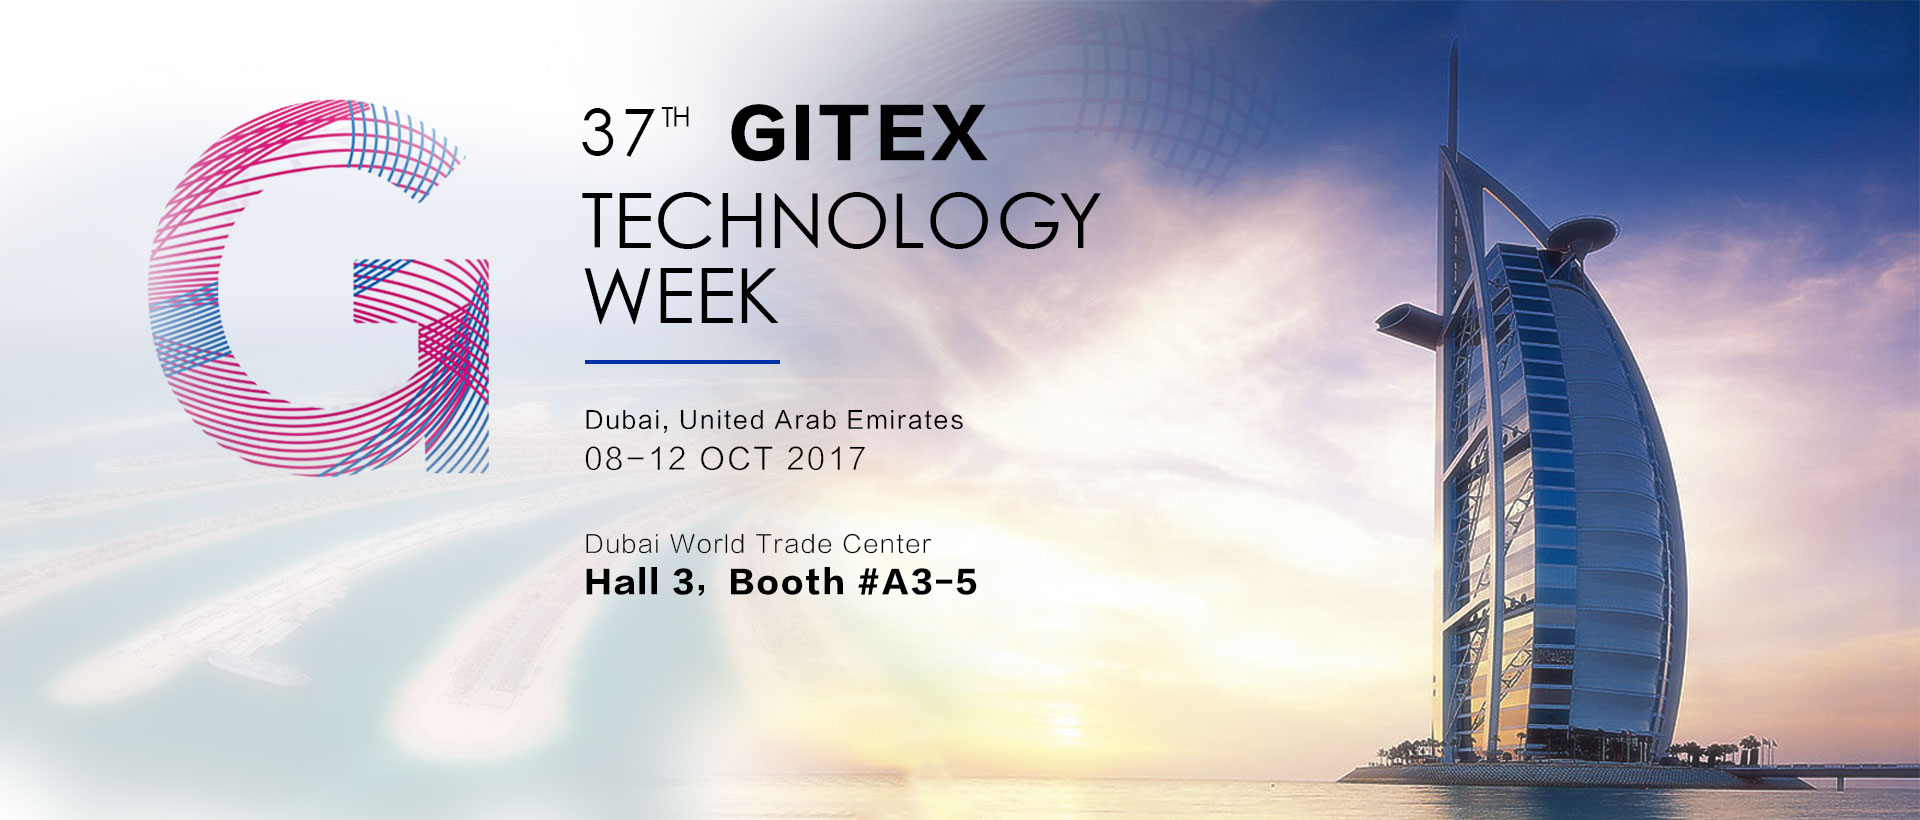 iDPRT invites you to join Gitex Exhibition 2017